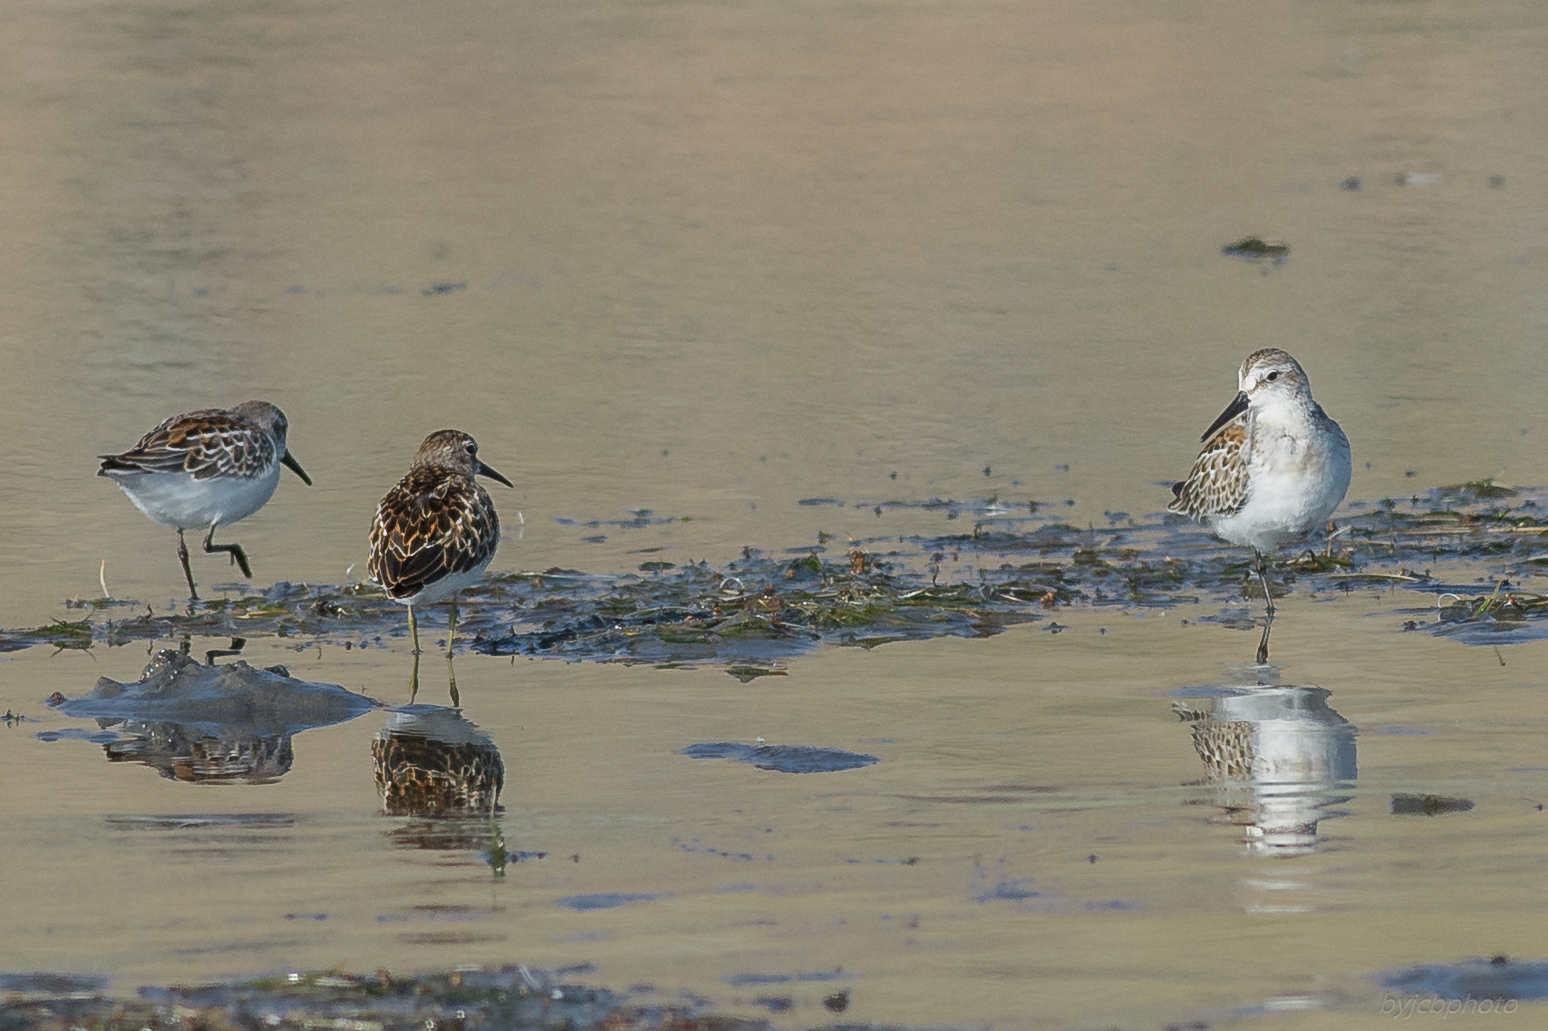 Least with Western Sandpiper   Settings: 450 mm (eqiv), 1/1600s, f/5.6, ISO500, +1/3EV